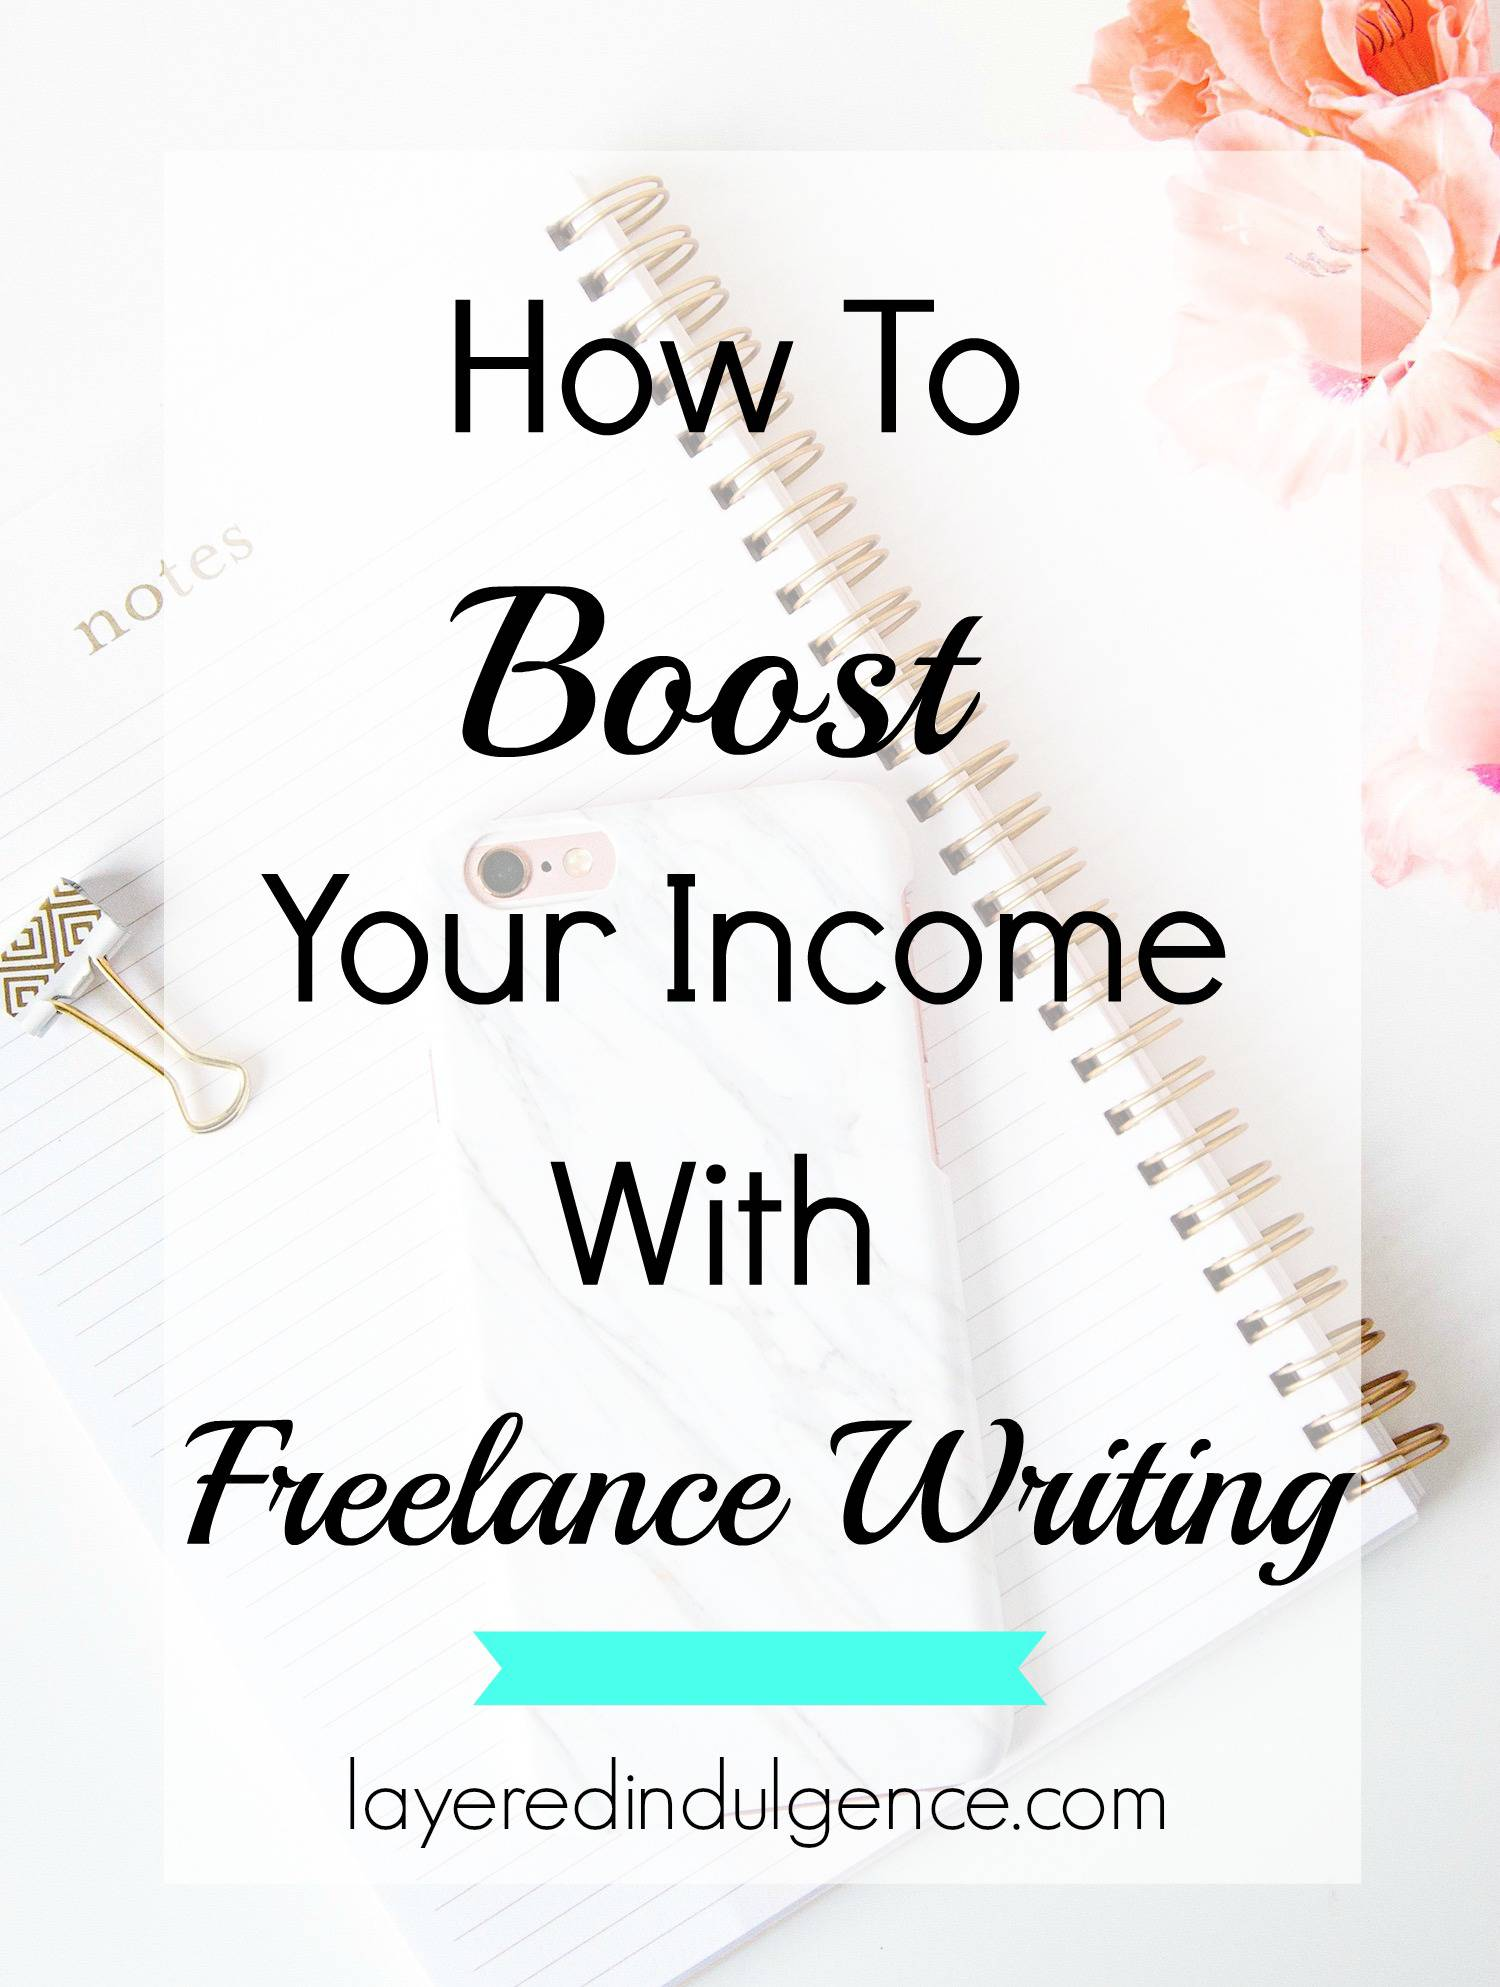 how bloggers can boost their income lance writing one way to boost your income as a blogger is lance writing if you